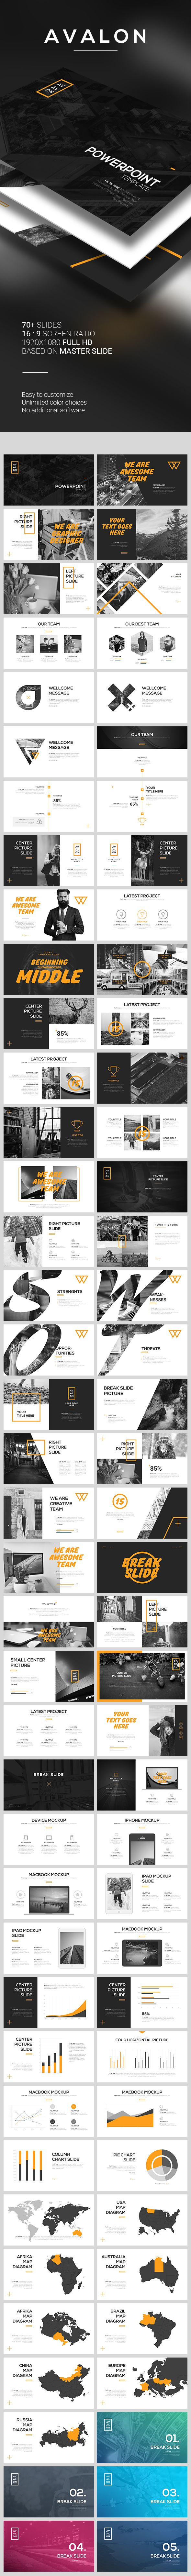 AVALON PowerPoint Template | Template, Presentation templates and ...